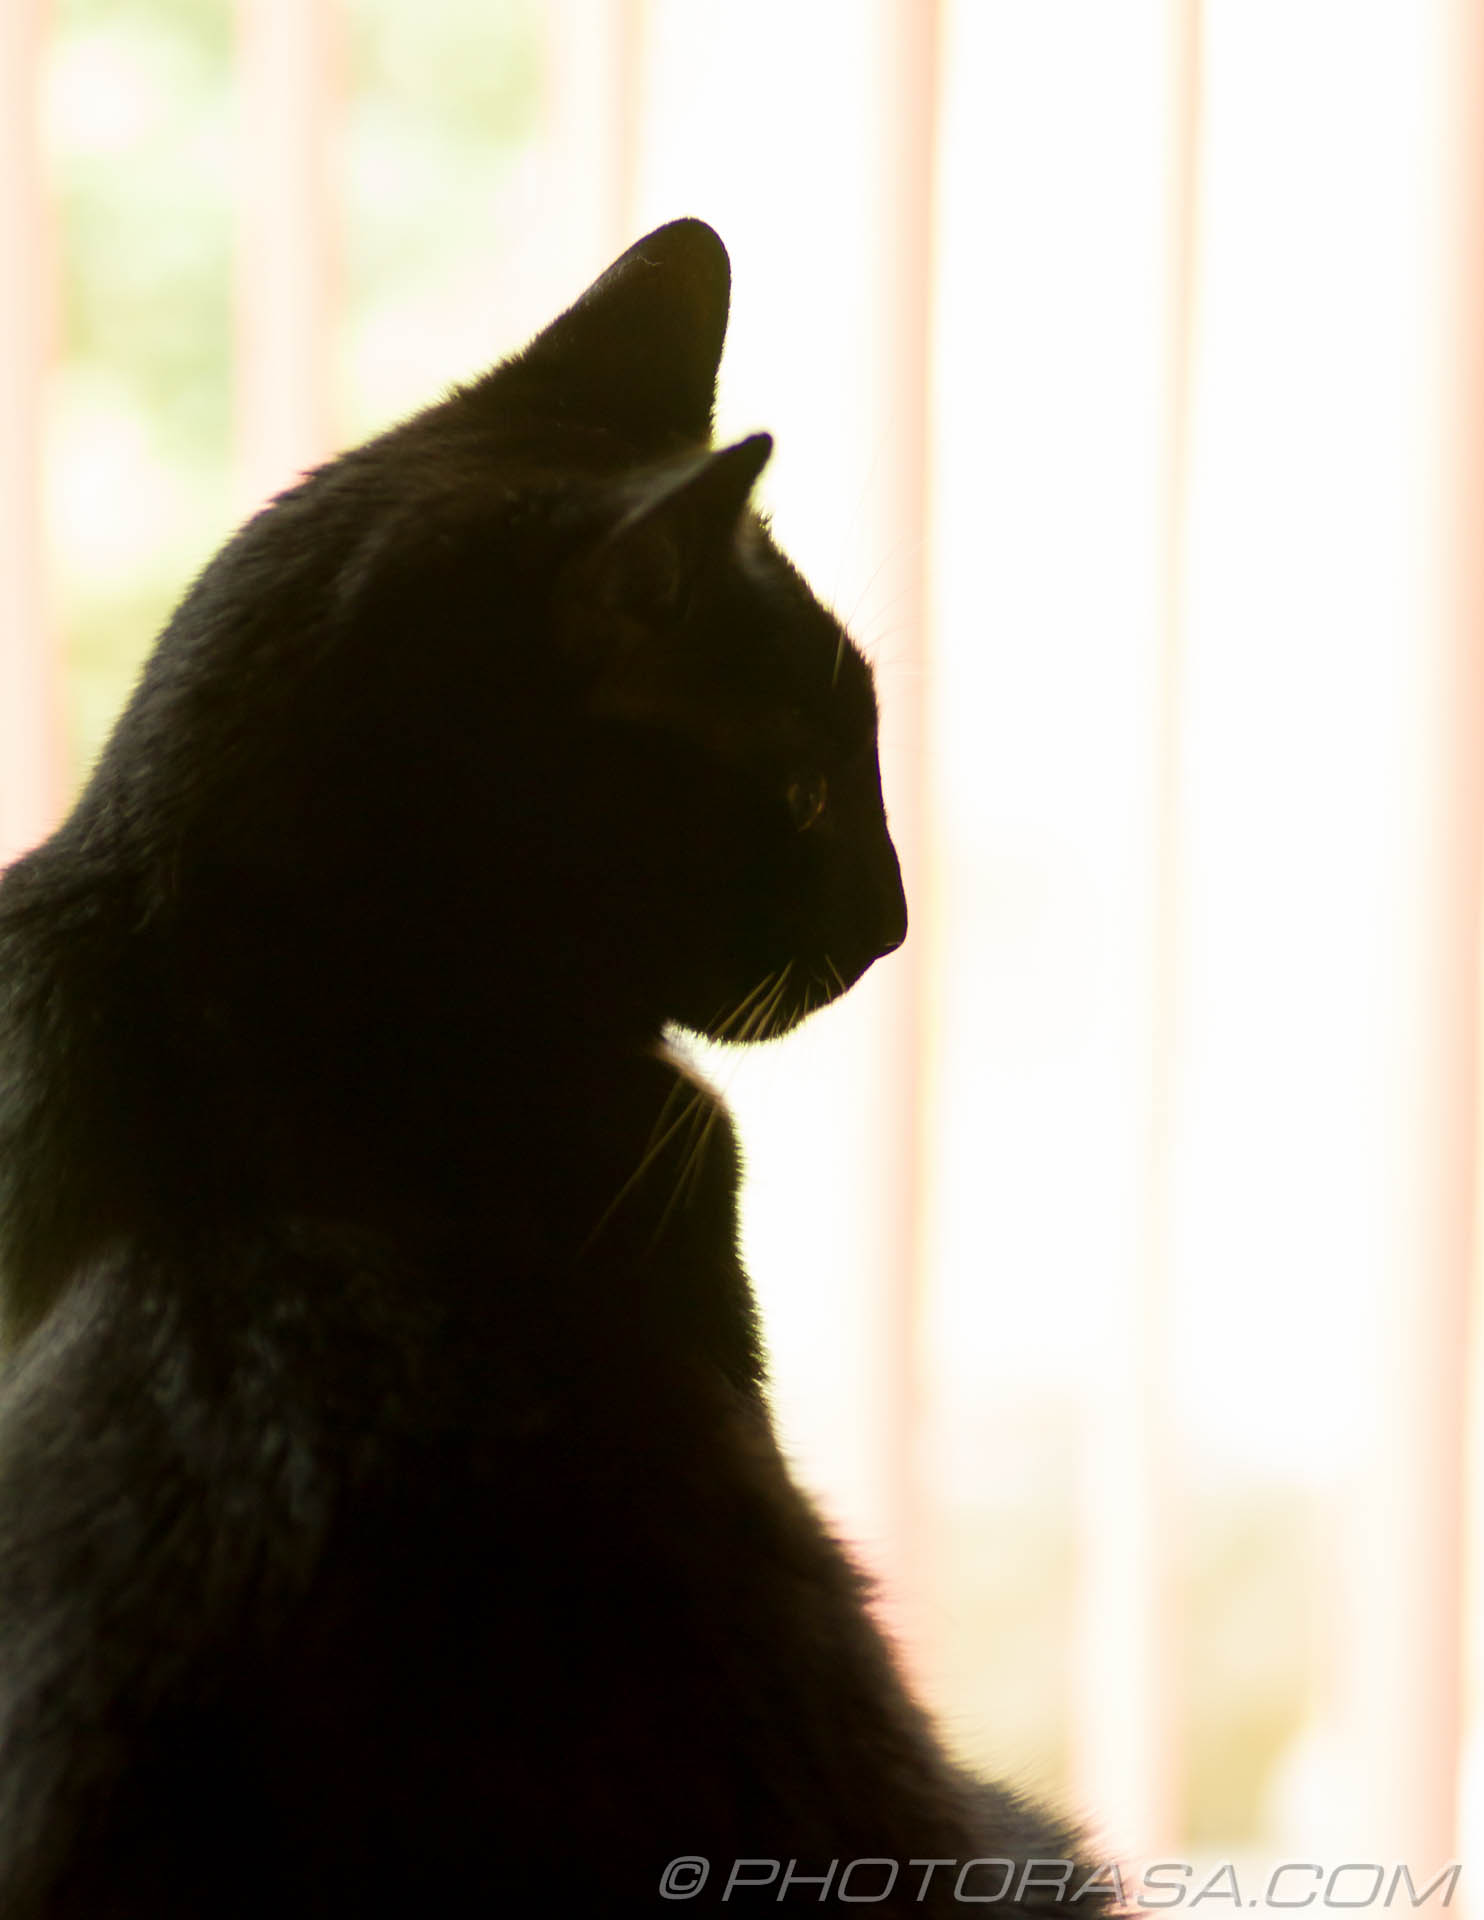 http://photorasa.com/black-cats/profile-by-window/